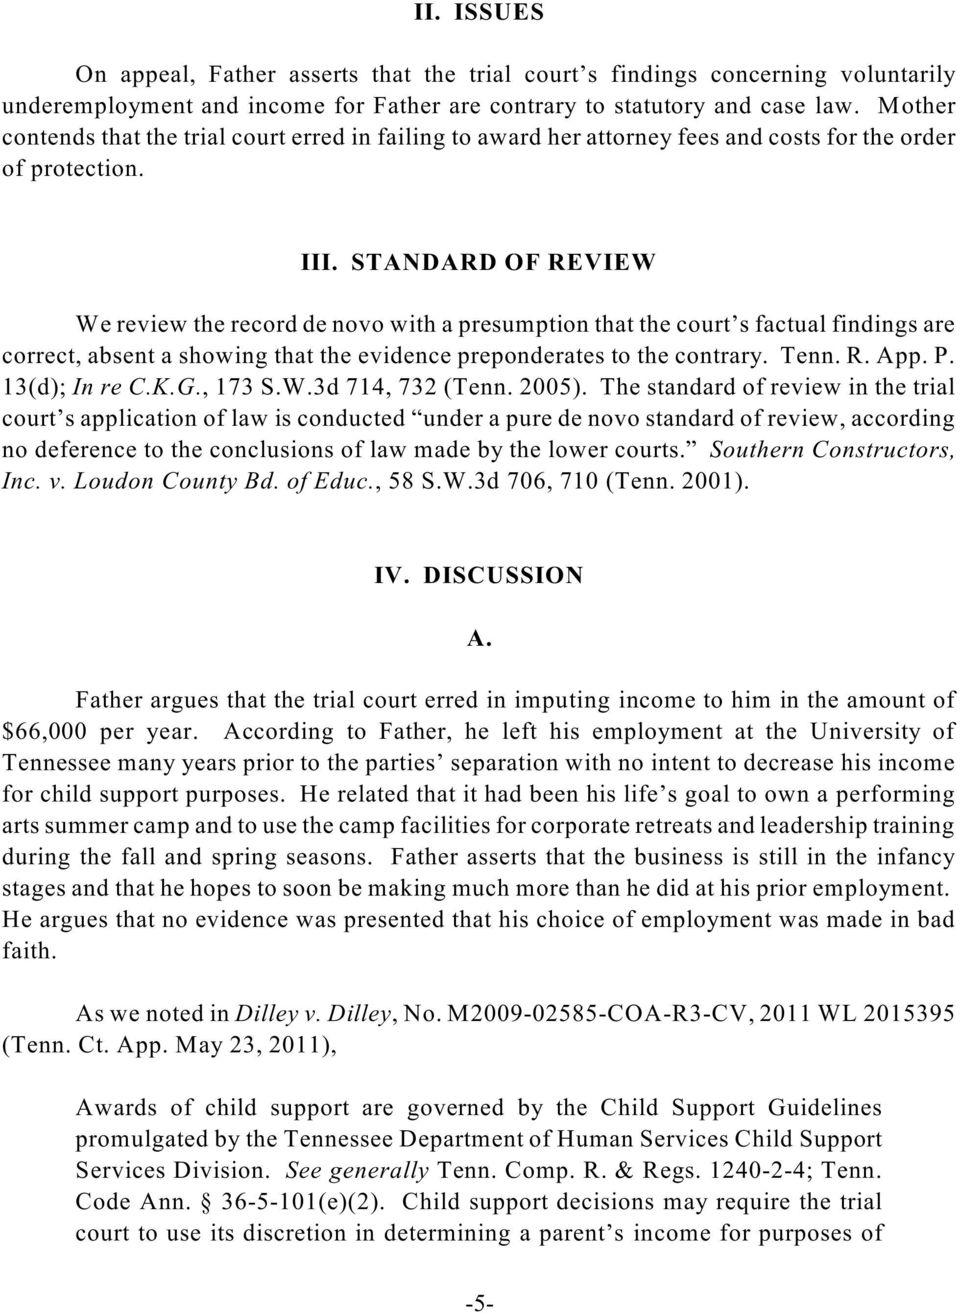 STANDARD OF REVIEW We review the record de novo with a presumption that the court s factual findings are correct, absent a showing that the evidence preponderates to the contrary. Tenn. R. App. P.